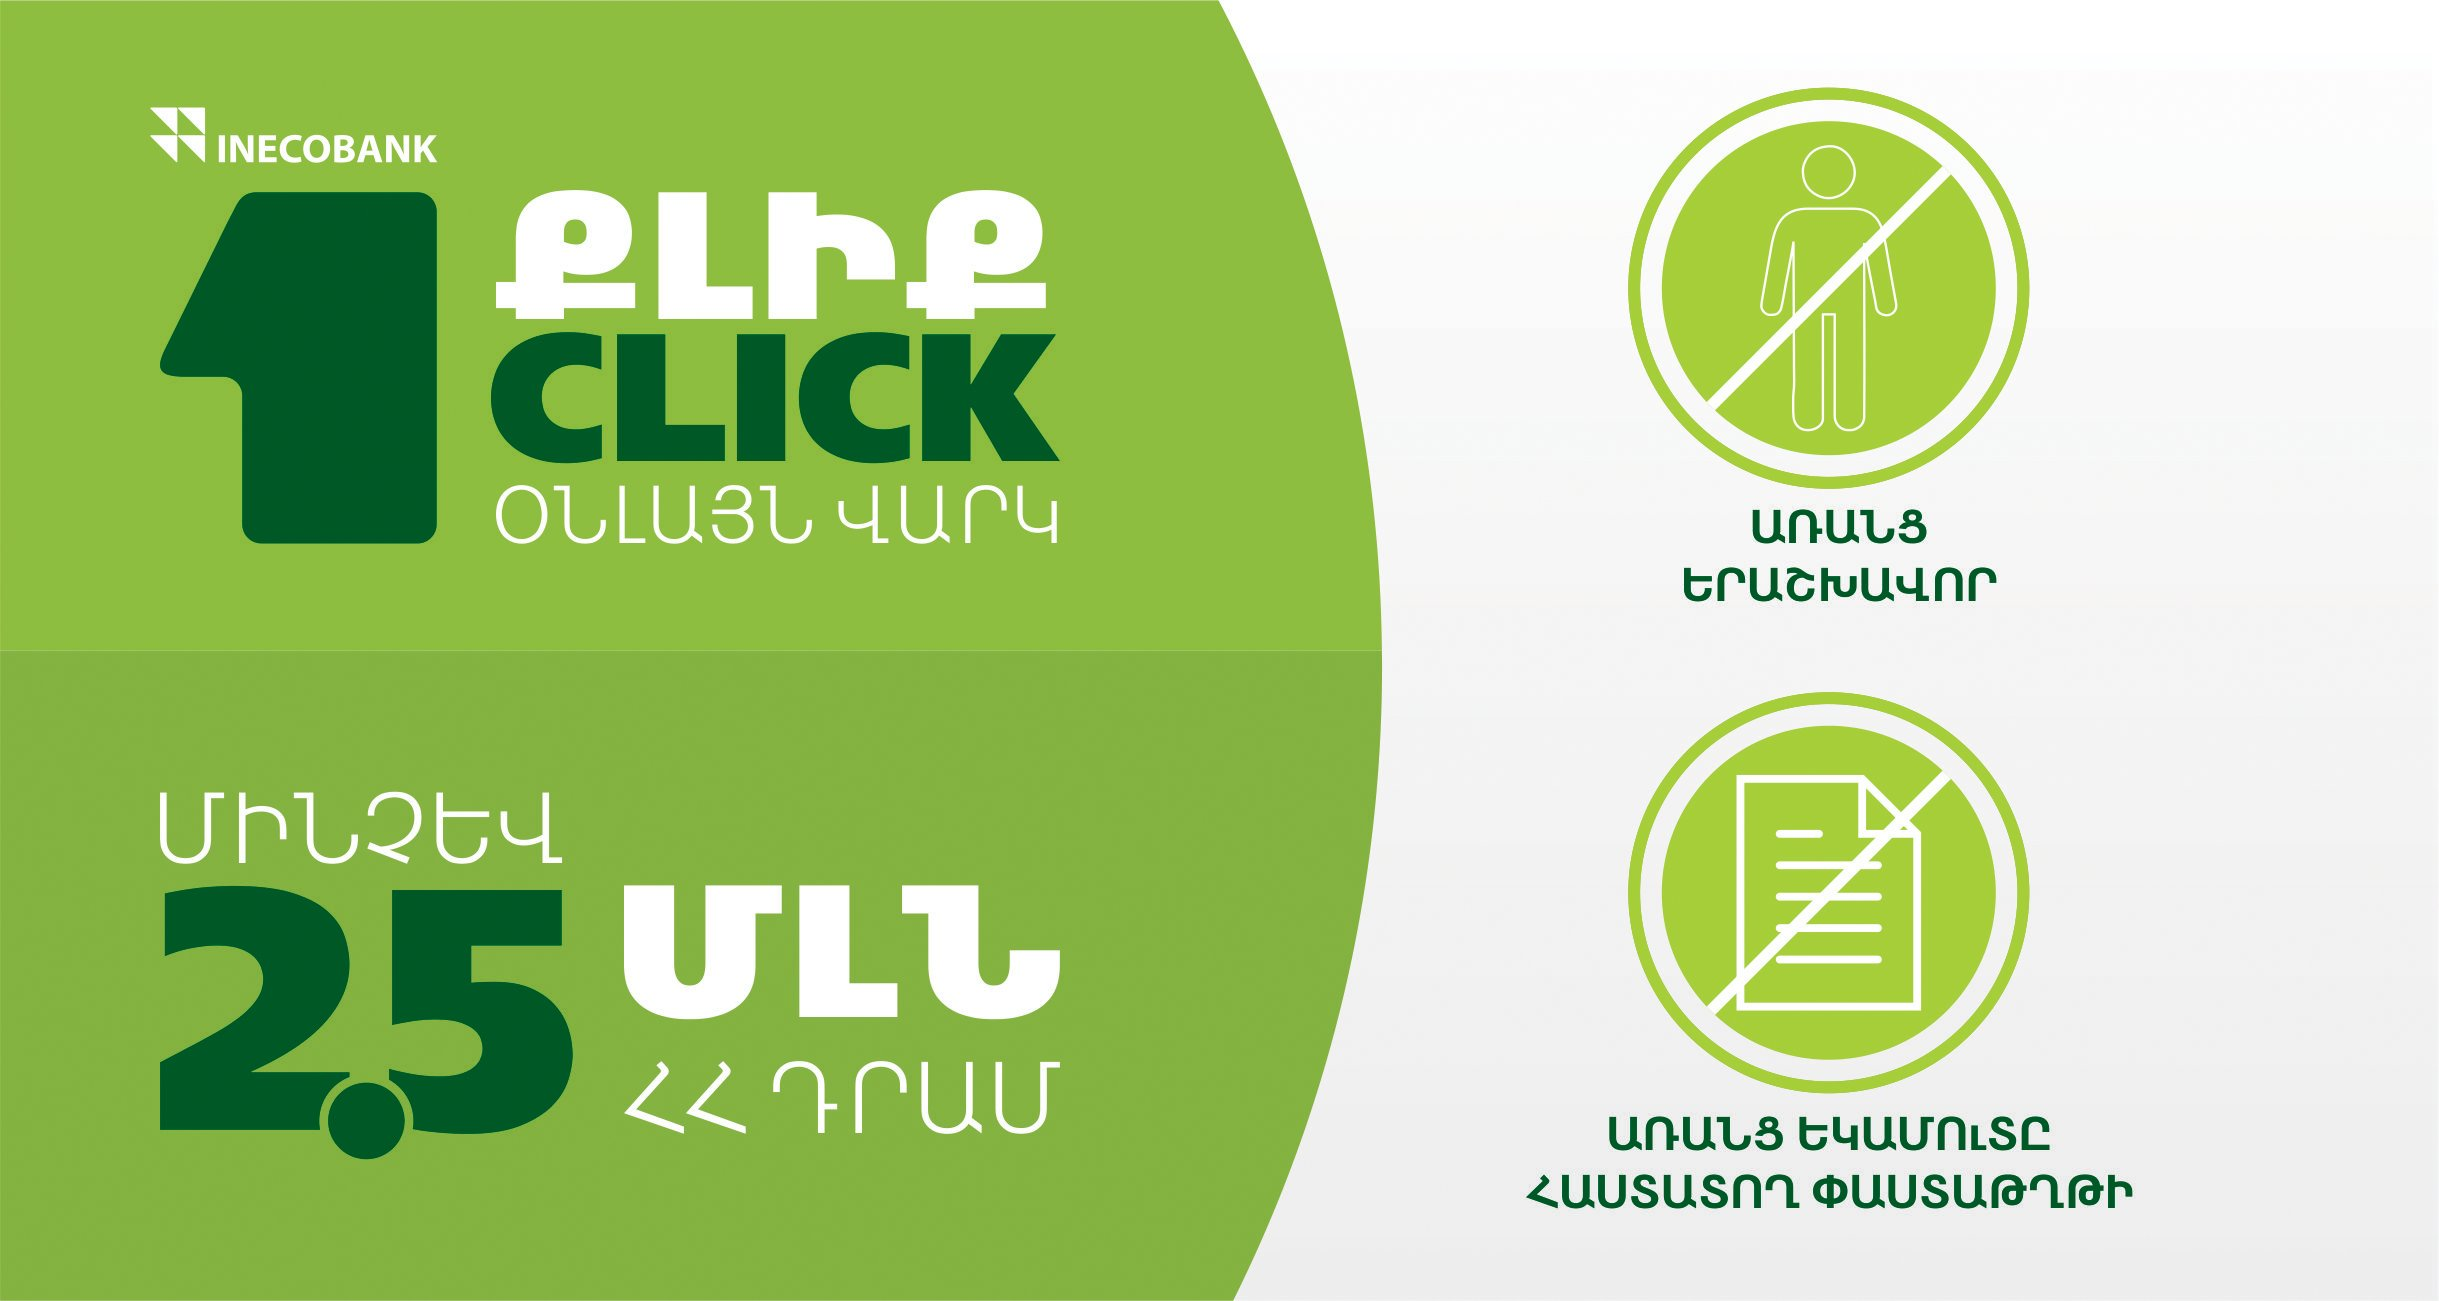 One Click Loan >> Inecobank 1 Click Online Loan Sets Limit Up To 2 5 Mln Amd